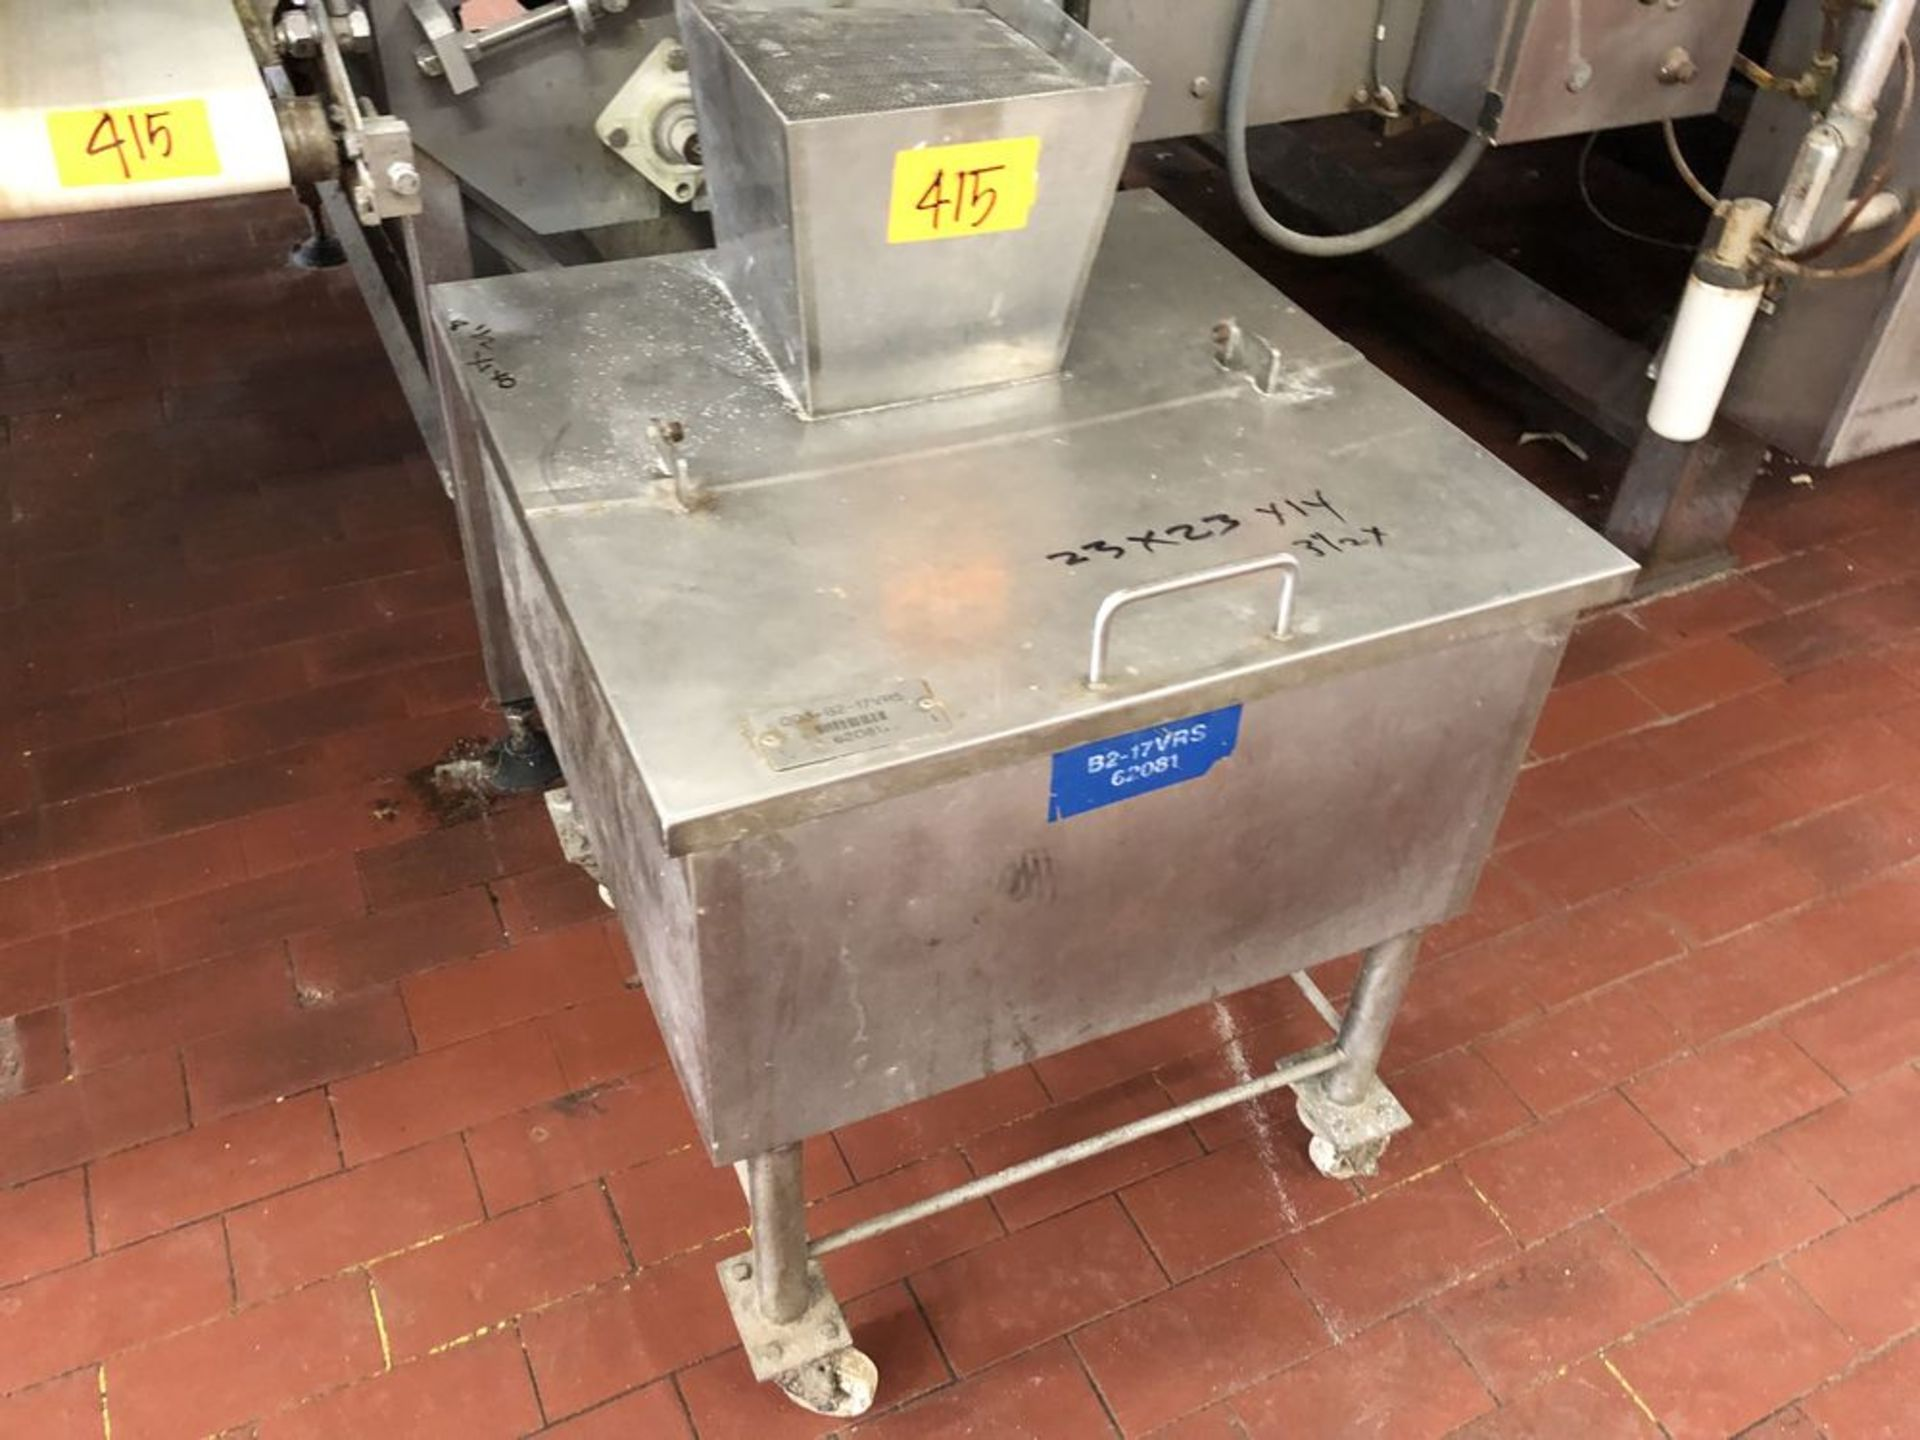 Lot 415 - Product Recovery Equipment